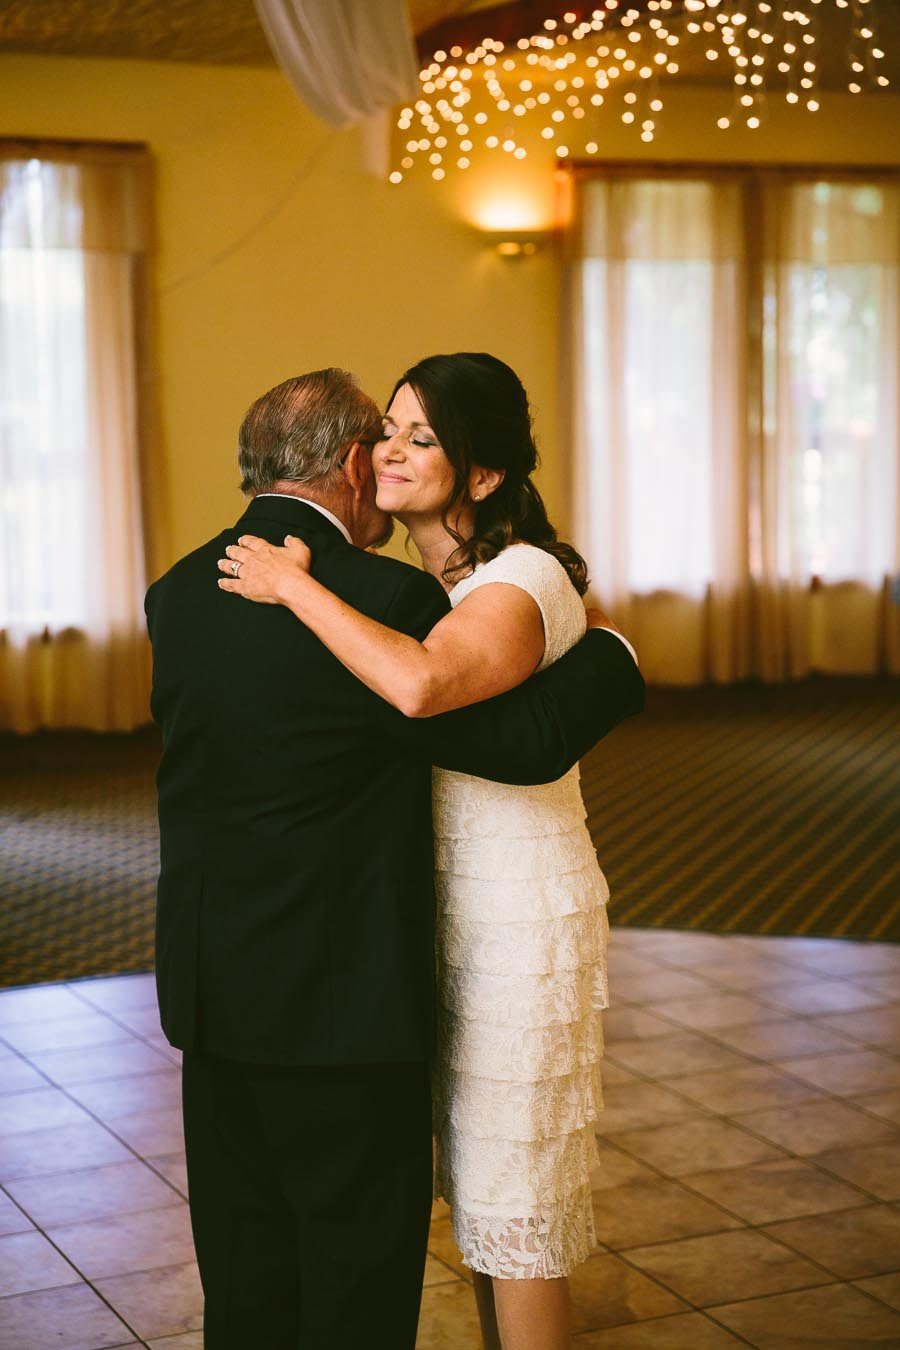 mohican-ohio-wedding-photography-landolls-castle-fall-31.jpg